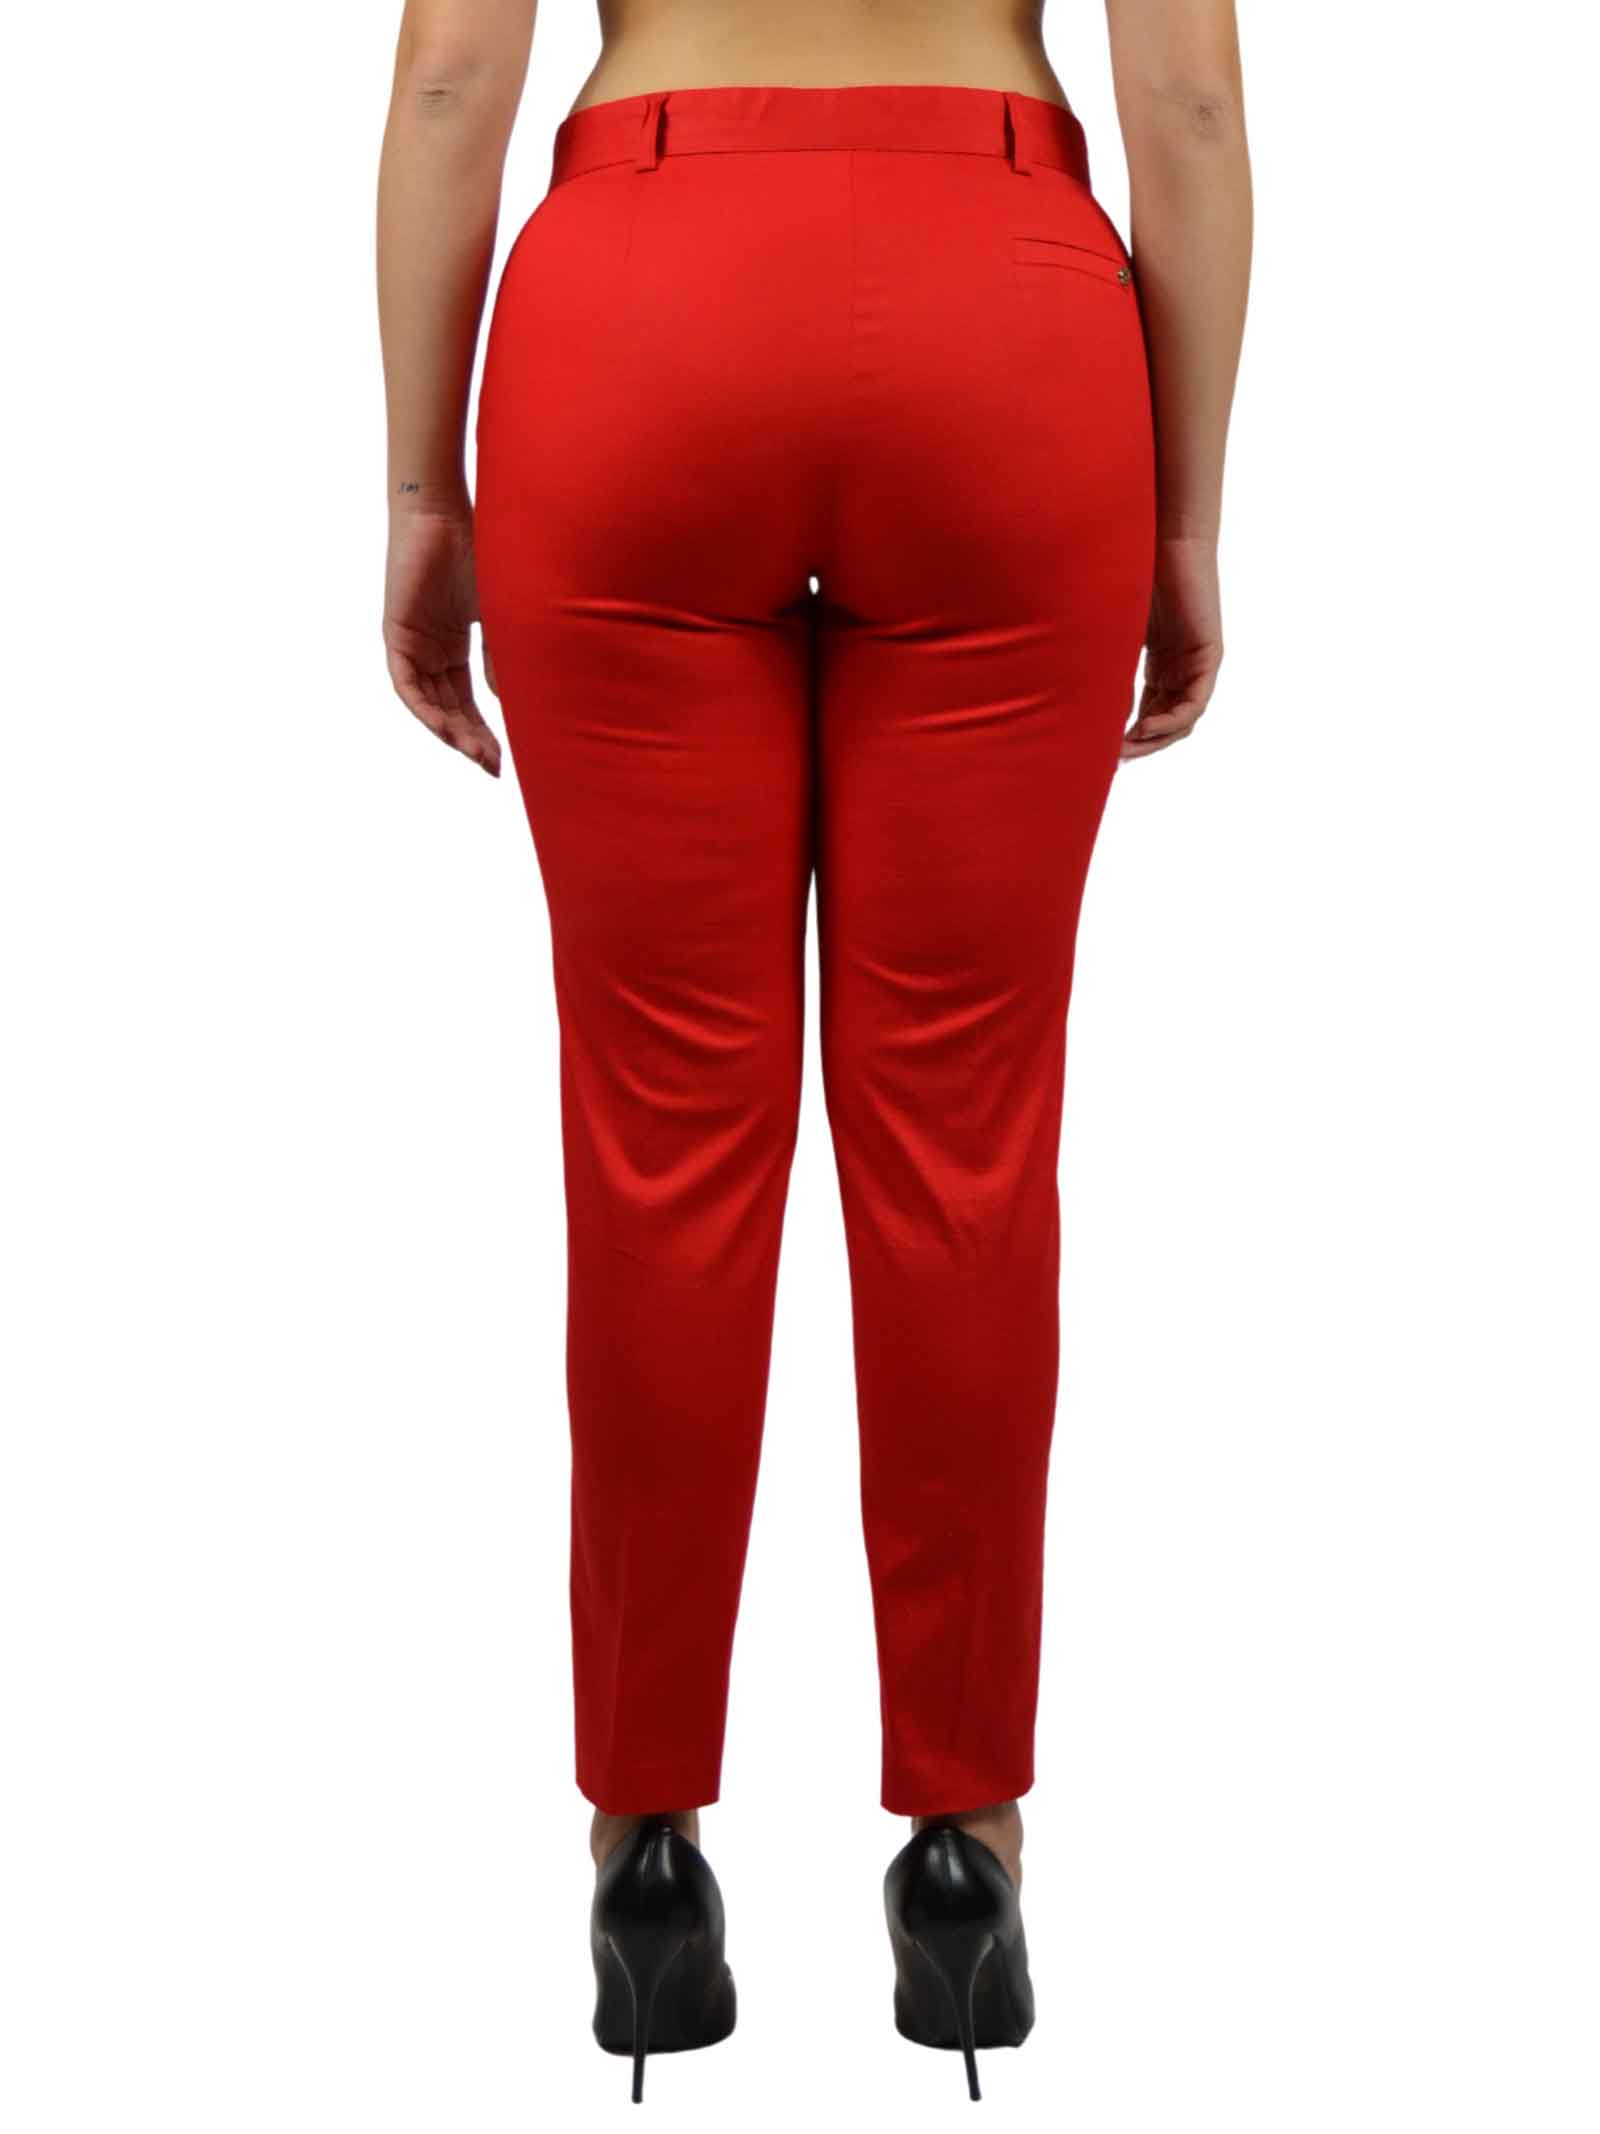 Trouser with a slightly high waist, CAPONE |  | 3052ROSSO